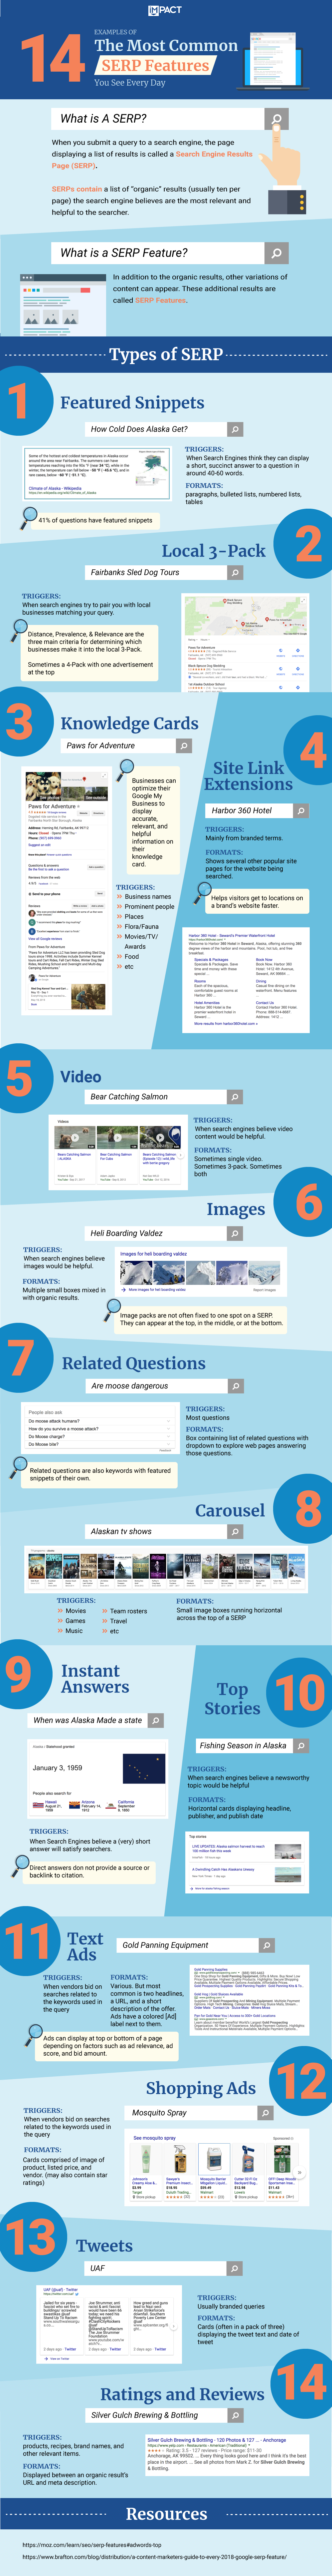 common-SERP-features[infographic] (1)